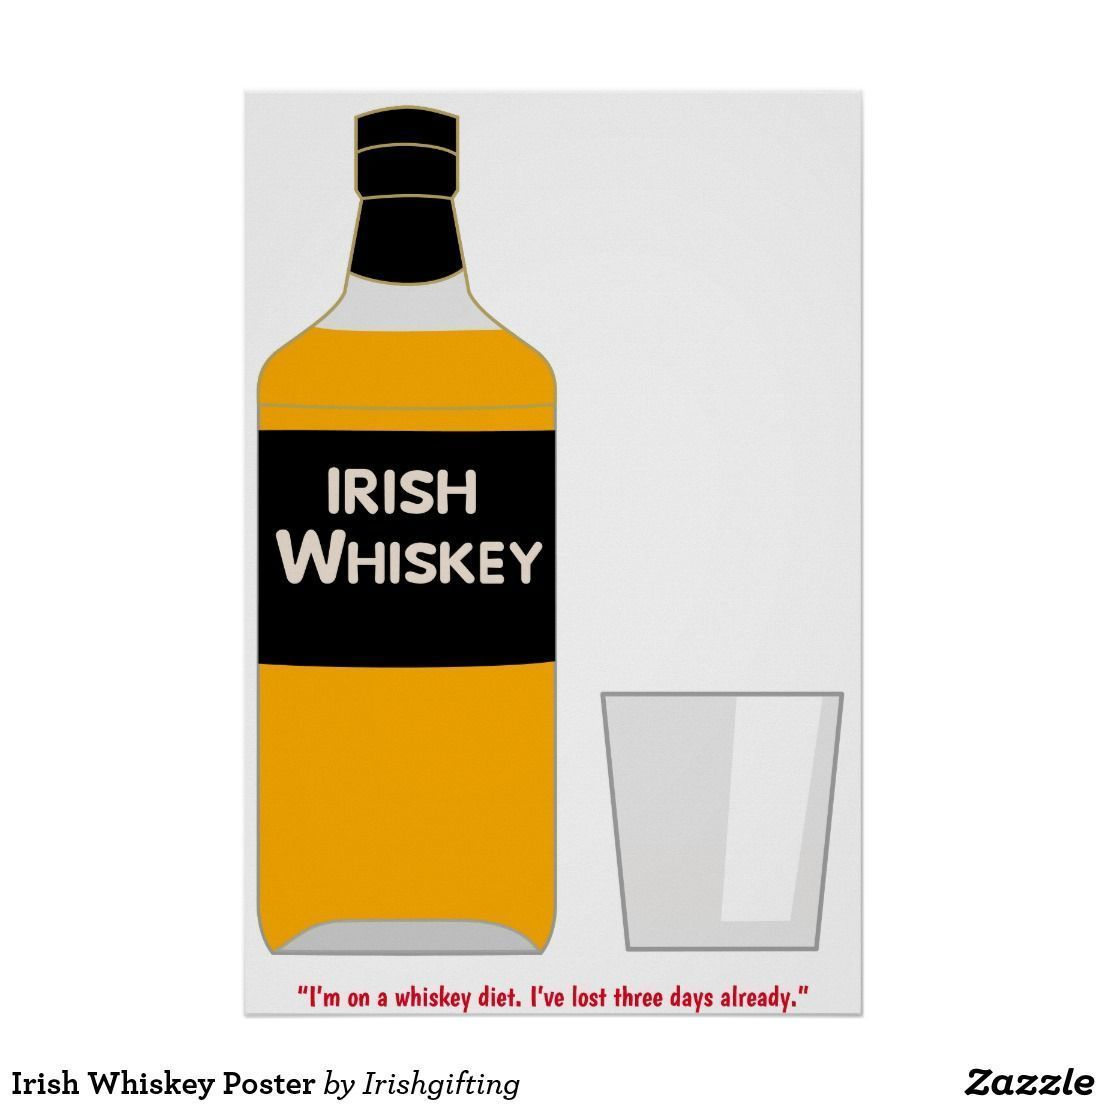 Irish Whiskey Poster | Zazzle.co.uk #irishwhiskey Irish Whiskey Poster #irishwhiskey Irish Whiskey Poster | Zazzle.co.uk #irishwhiskey Irish Whiskey Poster #irishwhiskey Irish Whiskey Poster | Zazzle.co.uk #irishwhiskey Irish Whiskey Poster #irishwhiskey Irish Whiskey Poster | Zazzle.co.uk #irishwhiskey Irish Whiskey Poster #irishwhiskey